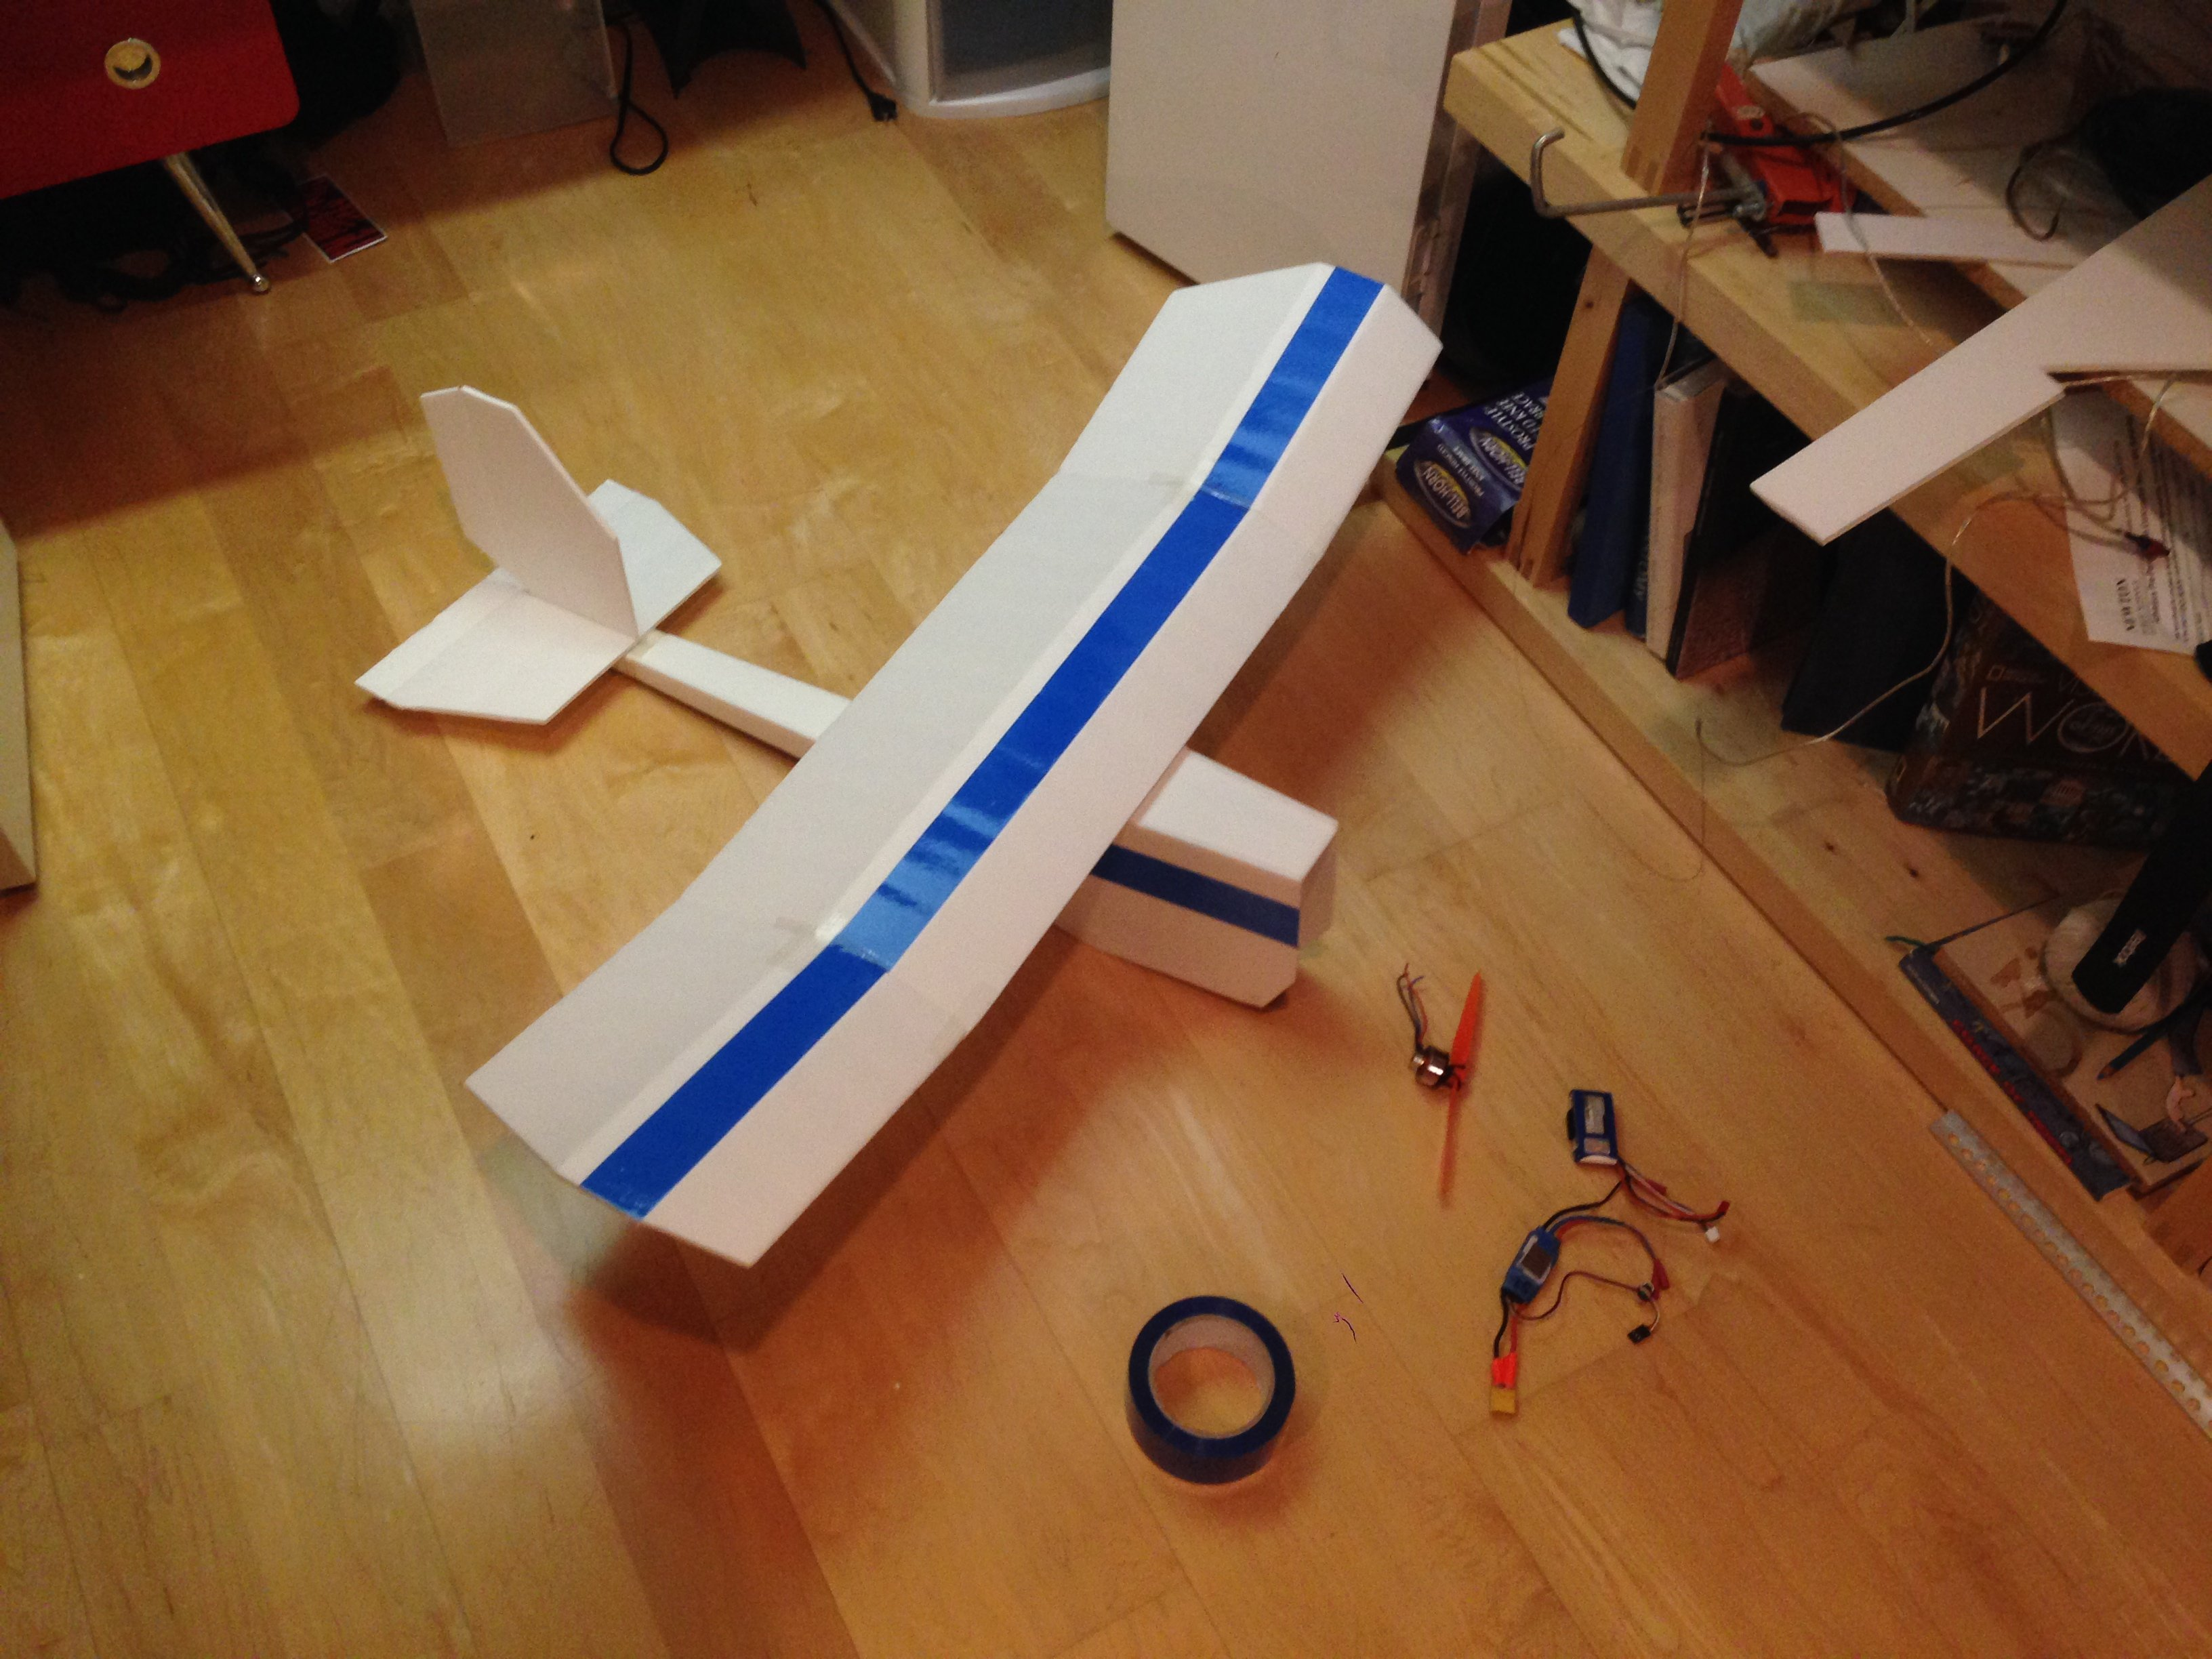 The Fish: A Scratch Built Slow Flier Flite Test - 3264x2448 - jpeg